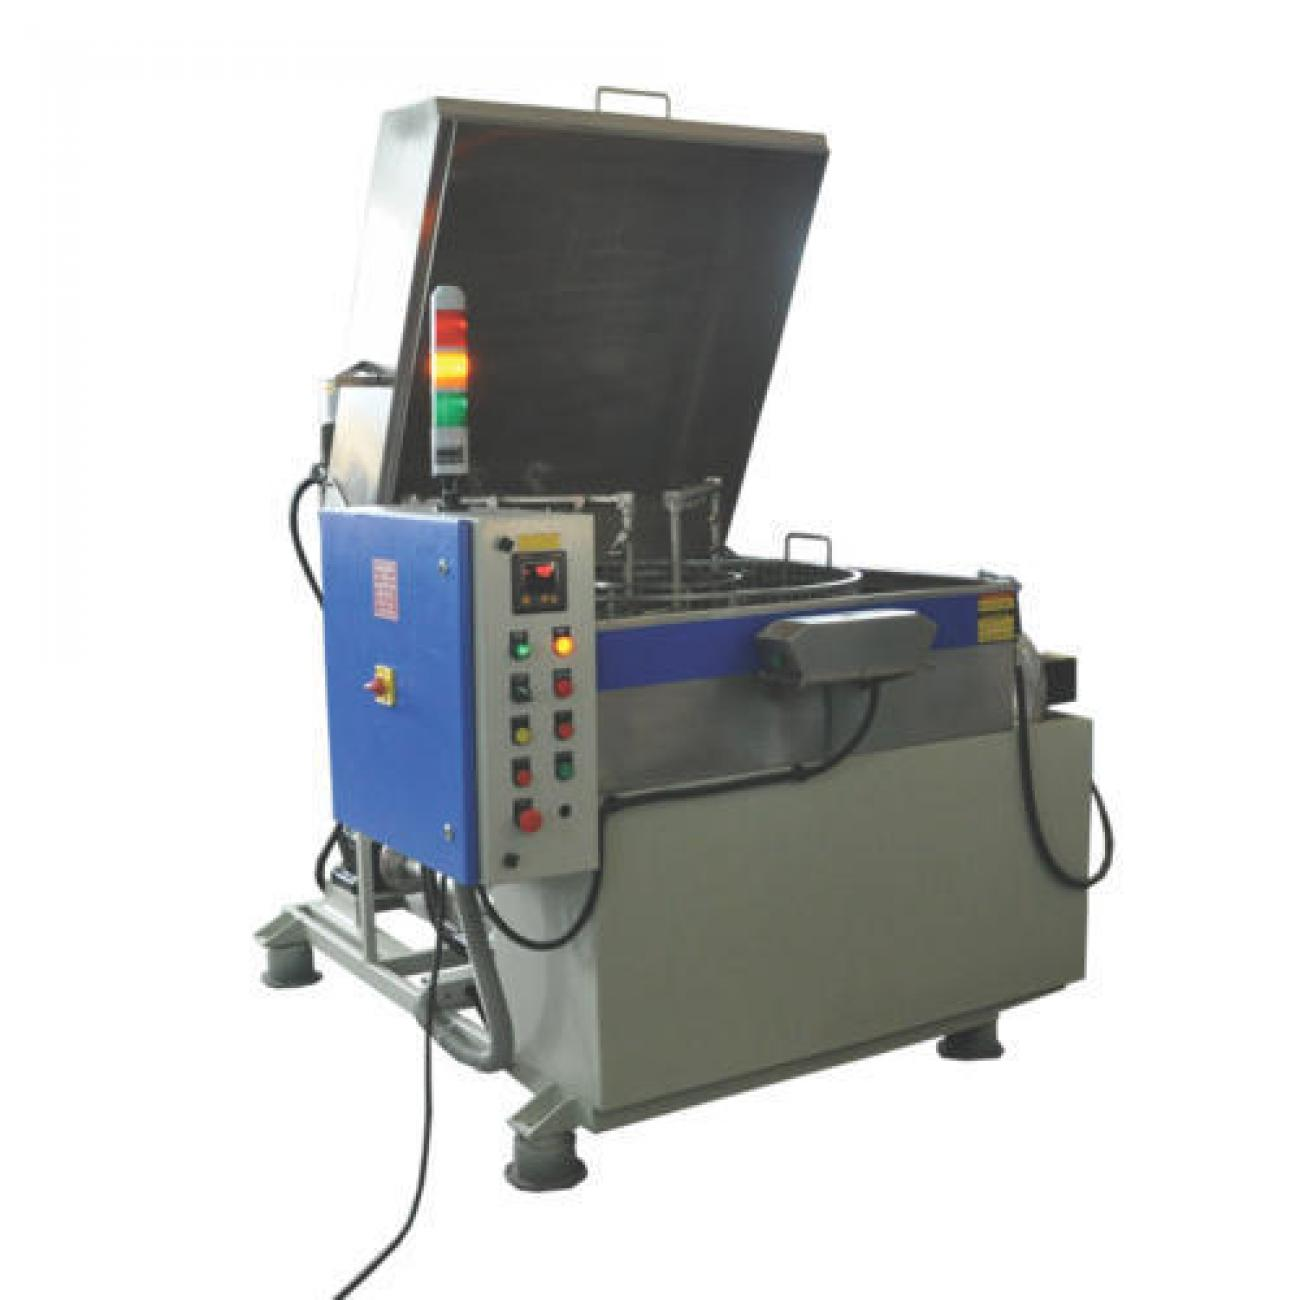 Component_Cleaning_Machine